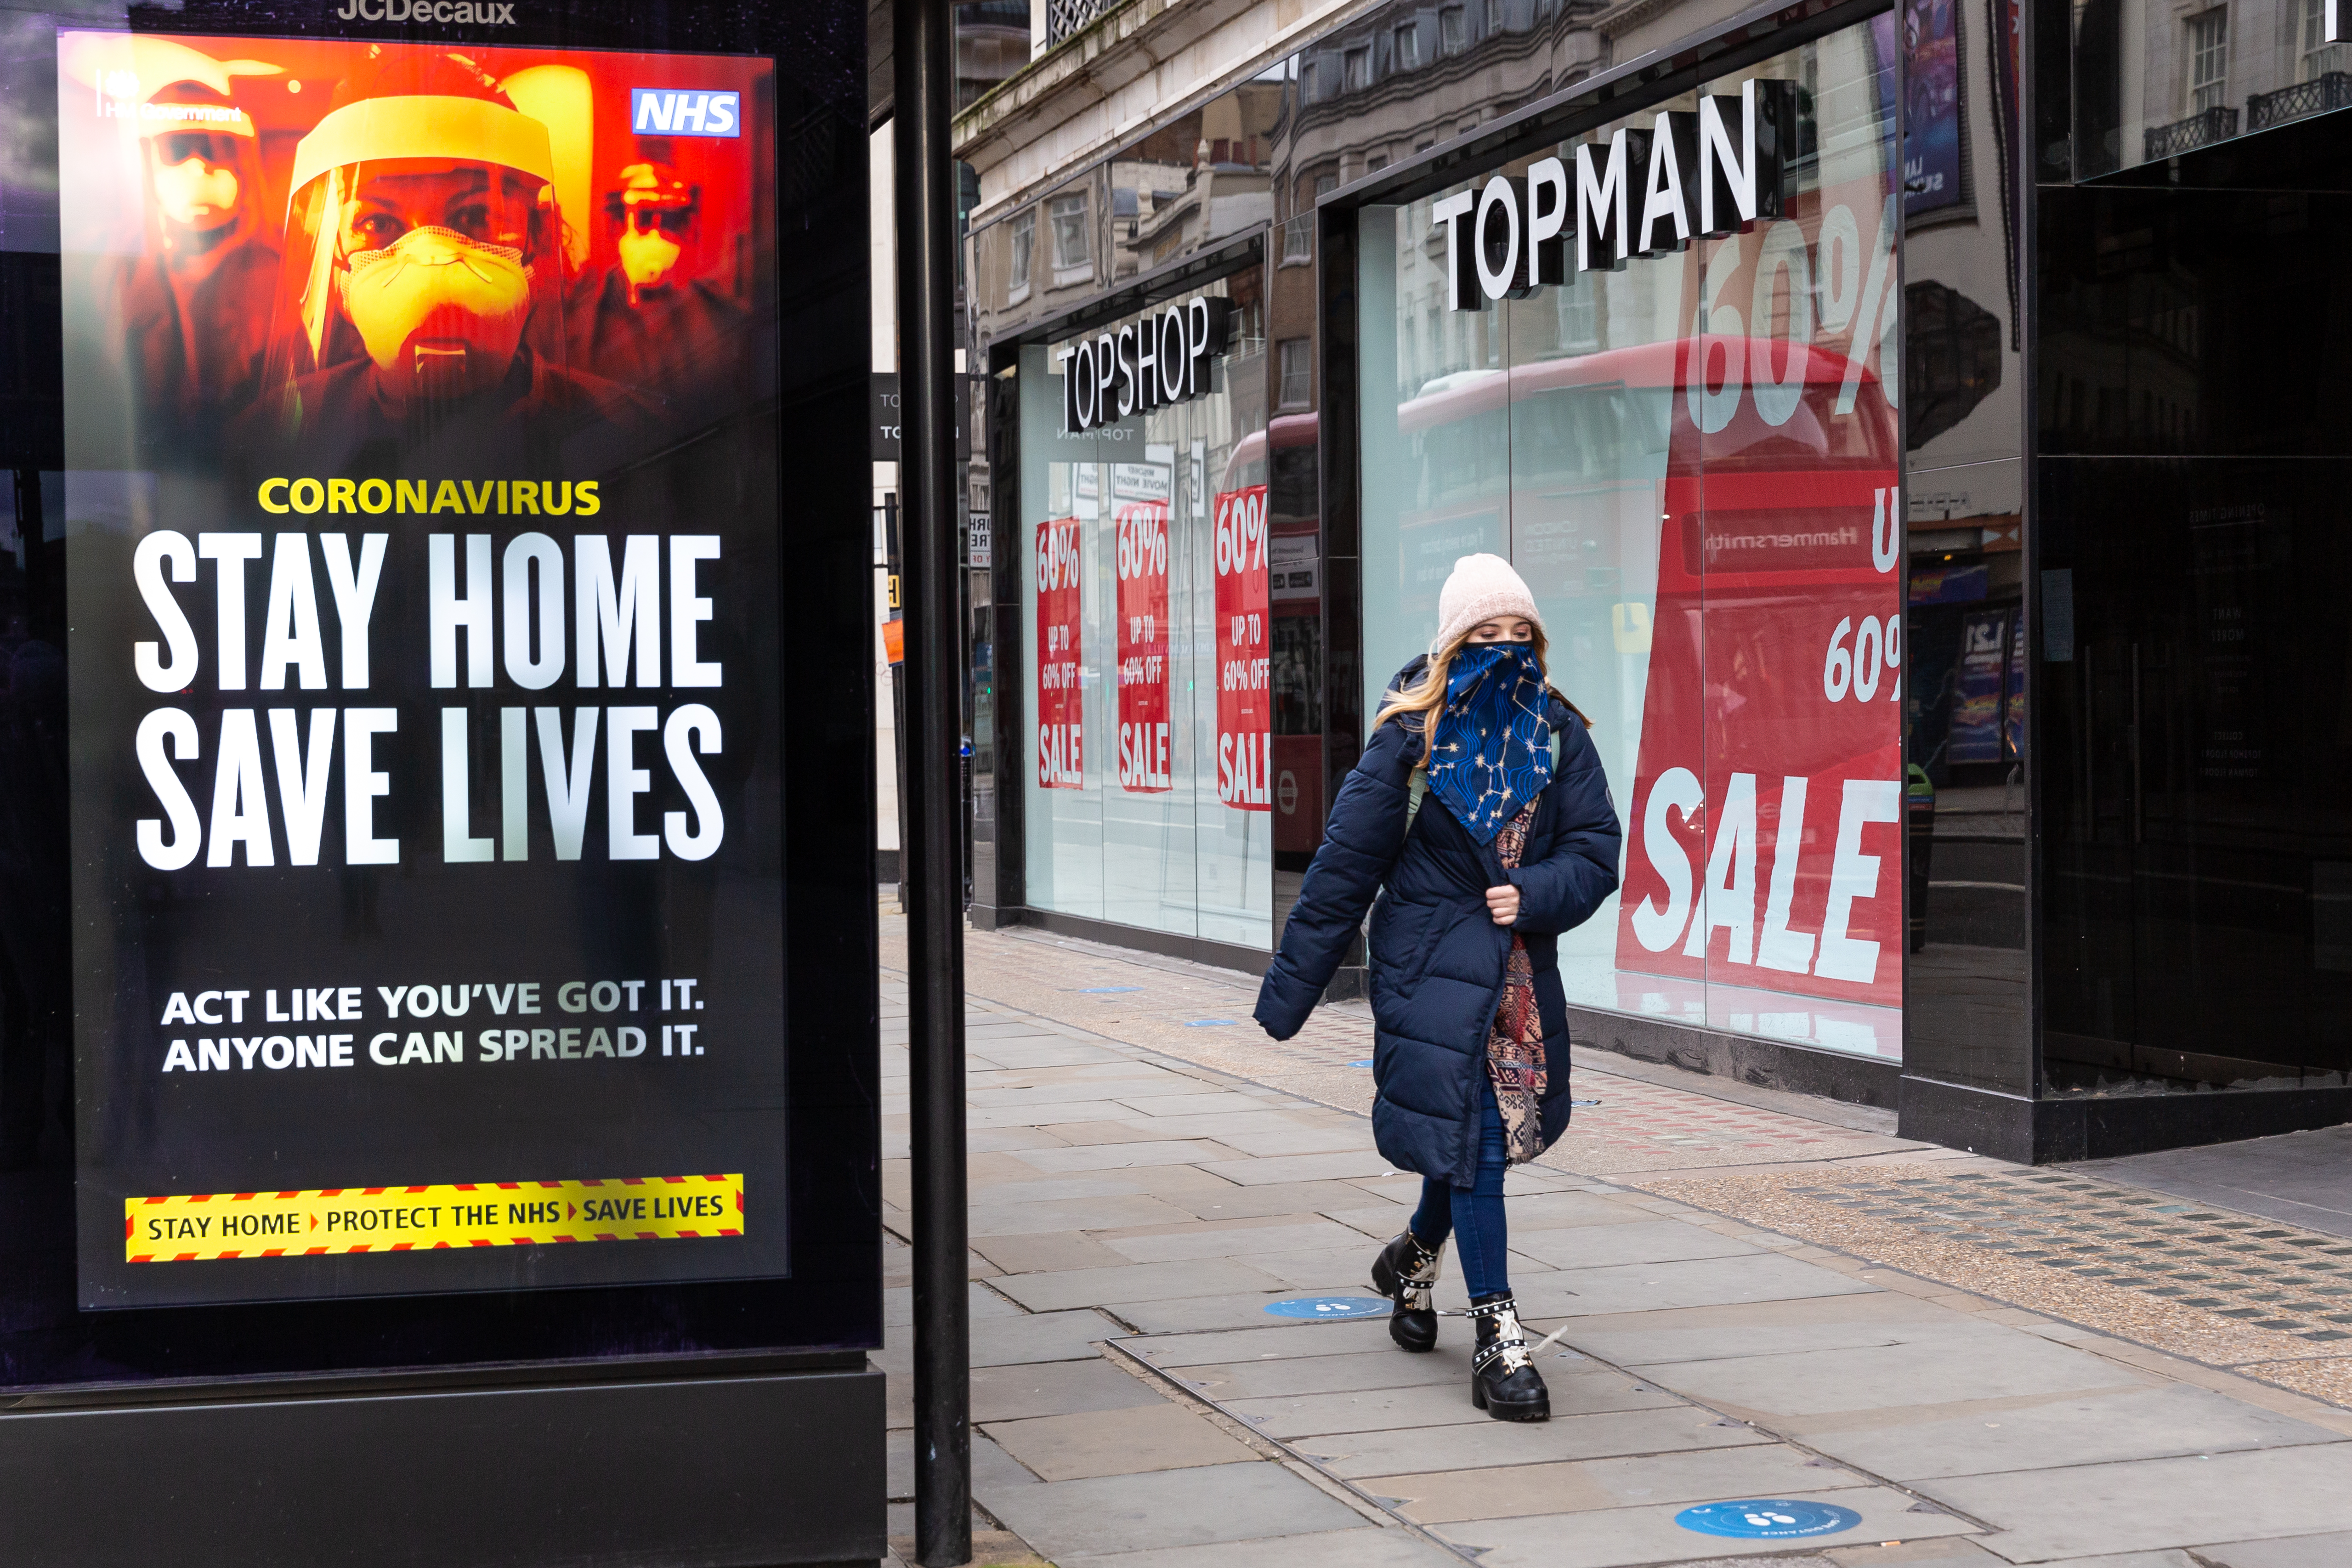 A woman in protective face mask is seen walking by the NHS 'Stay Home' poster as the UK's government introduced strict Coronavirus restrictions earlier this month due to sharp increase in numbers of Covid-19 cases in UK - London, England on January 11, 2021. Exercising  and going to work are the exceptions for Stay at Home policy. (Photo by Dominika Zarzycka/NurPhoto via Getty Images)